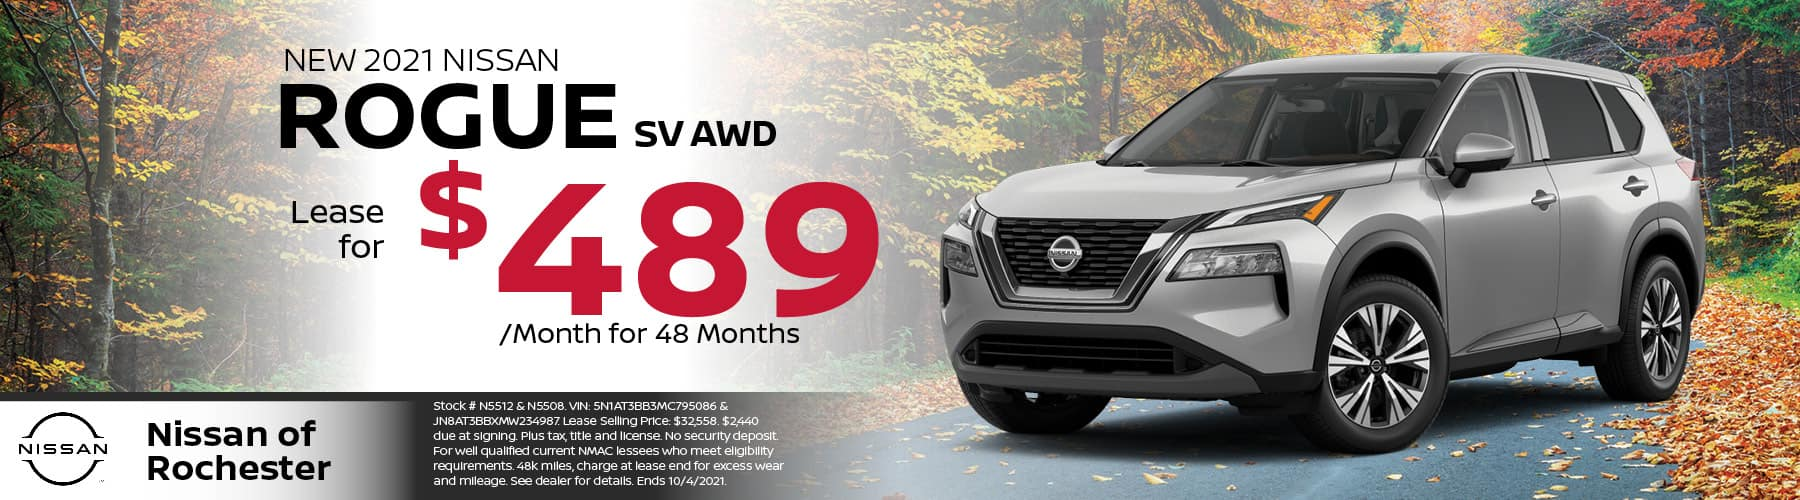 2021 Nissan Rogue Special Offer | Nissan of Rochester, MN